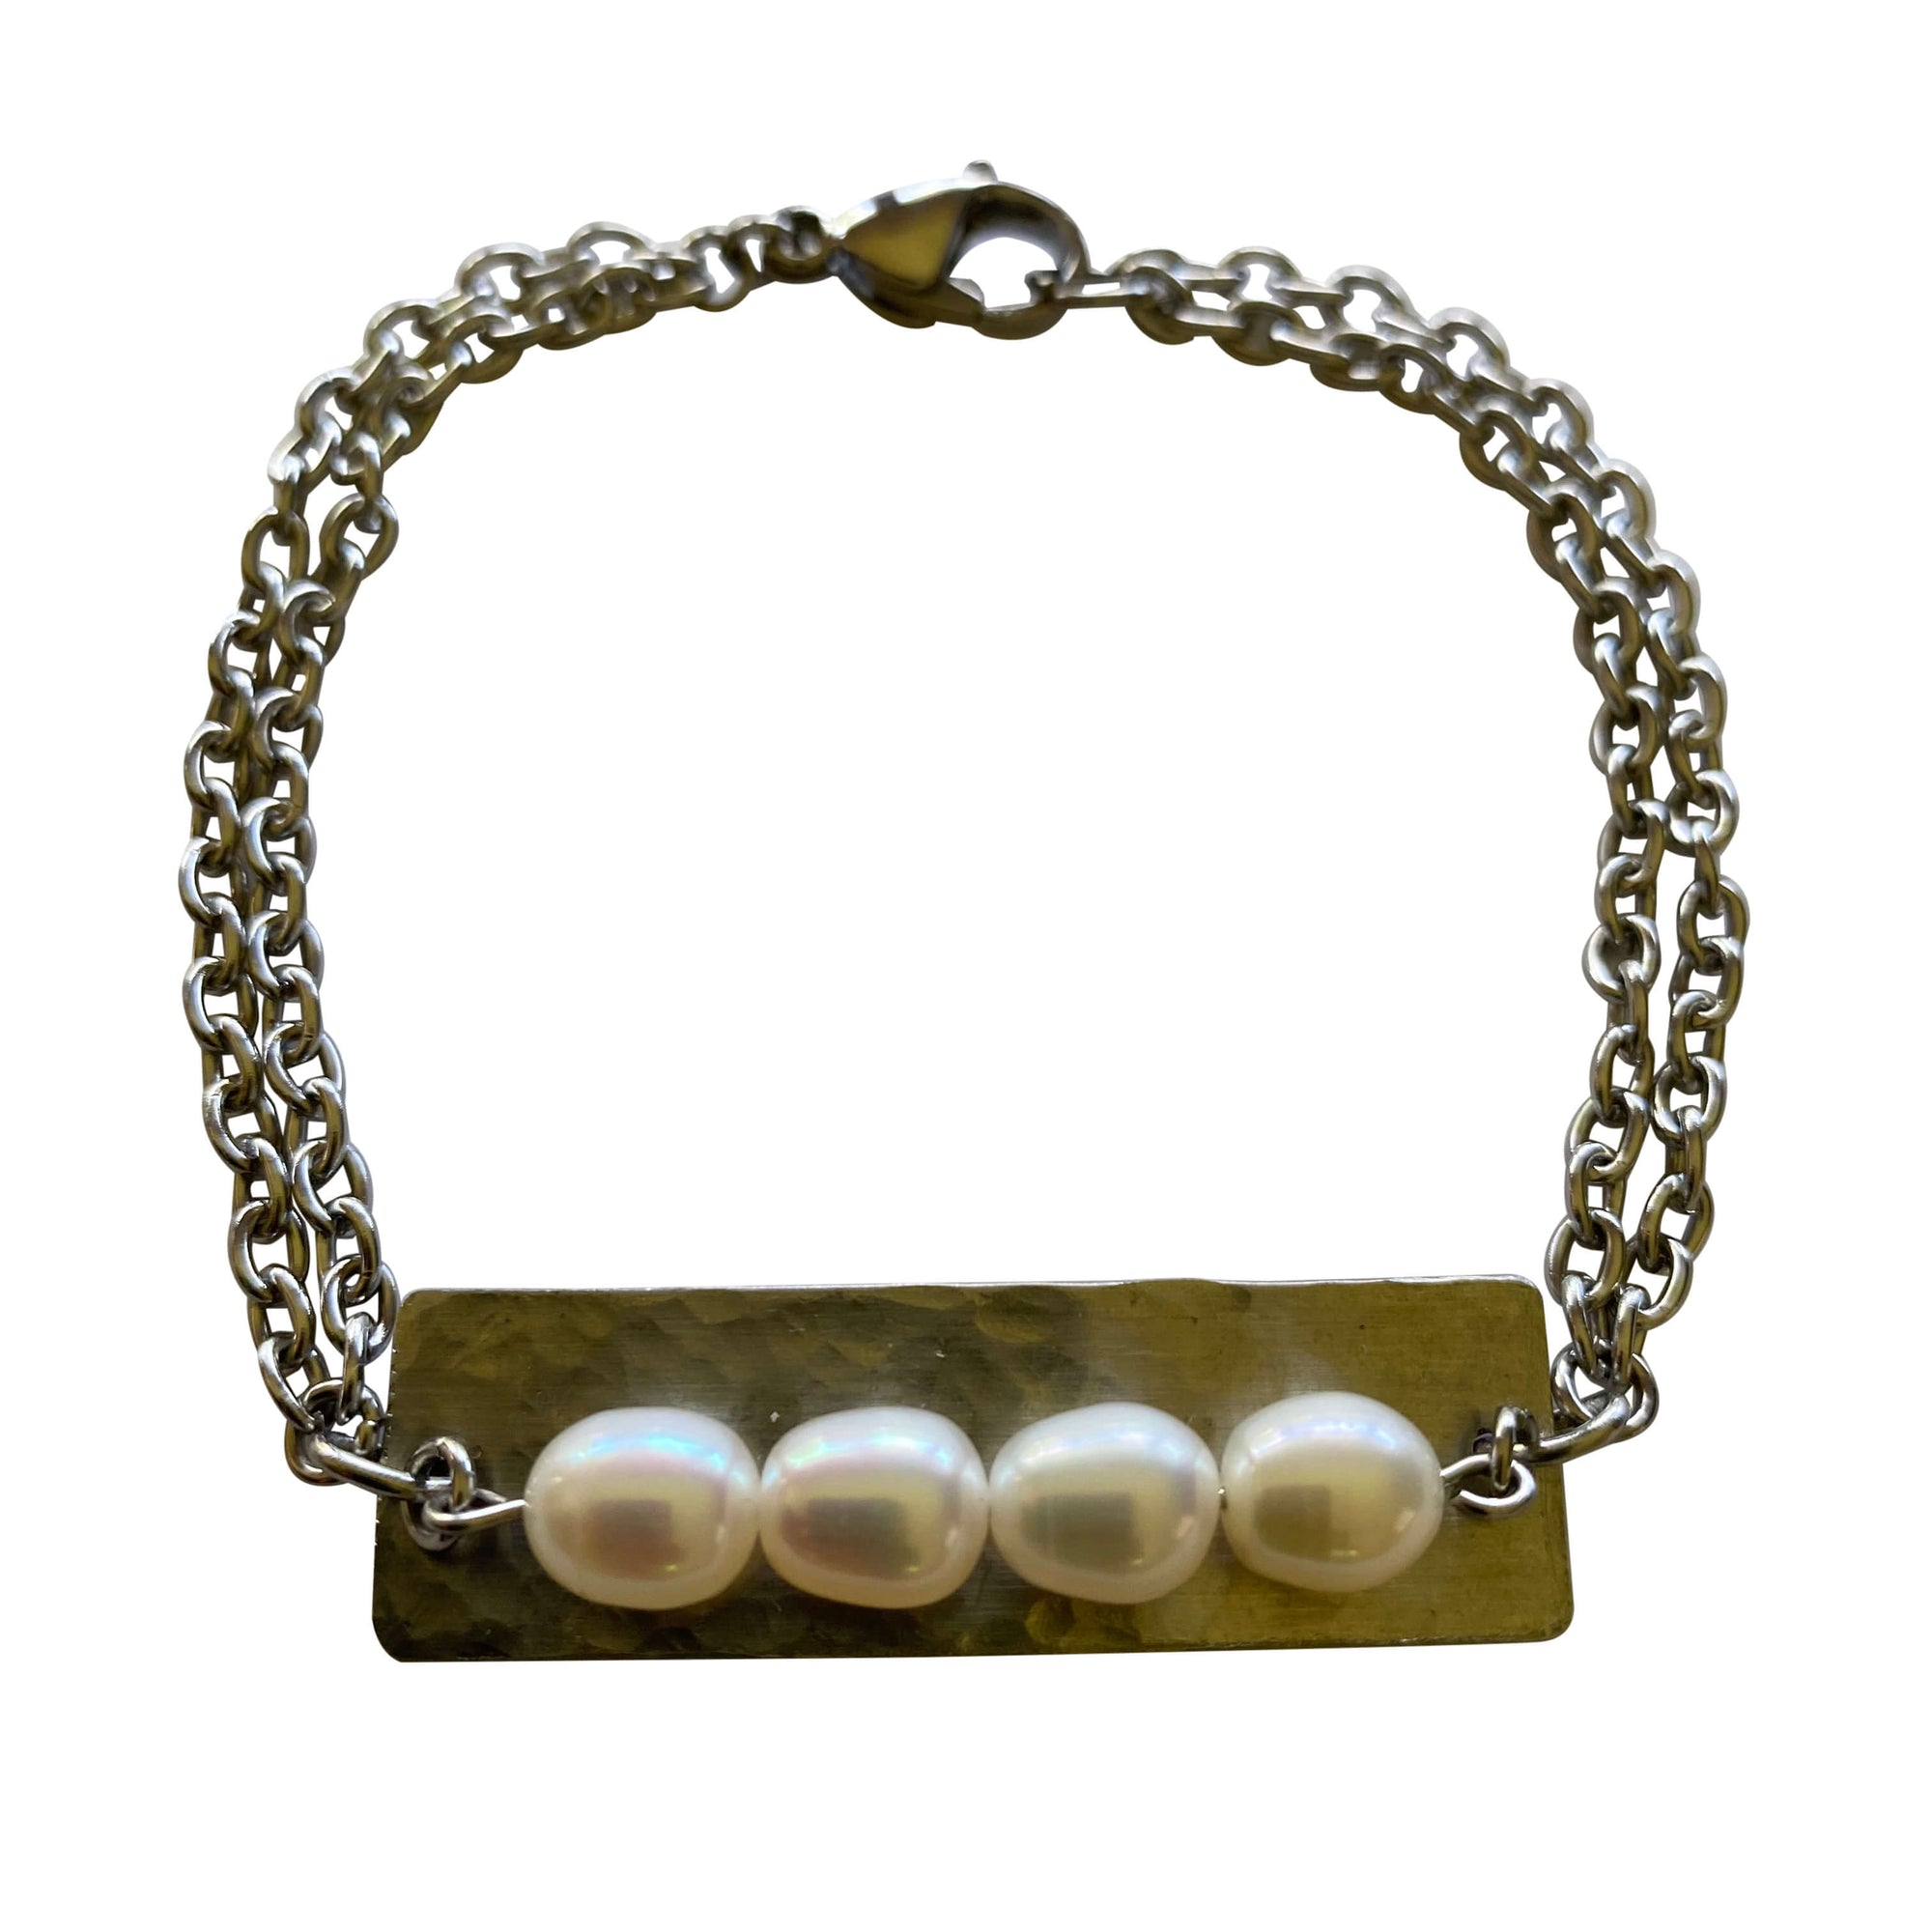 Freshwater Pearl Stainless Steel Silver Bracelet with Toggle Clasp